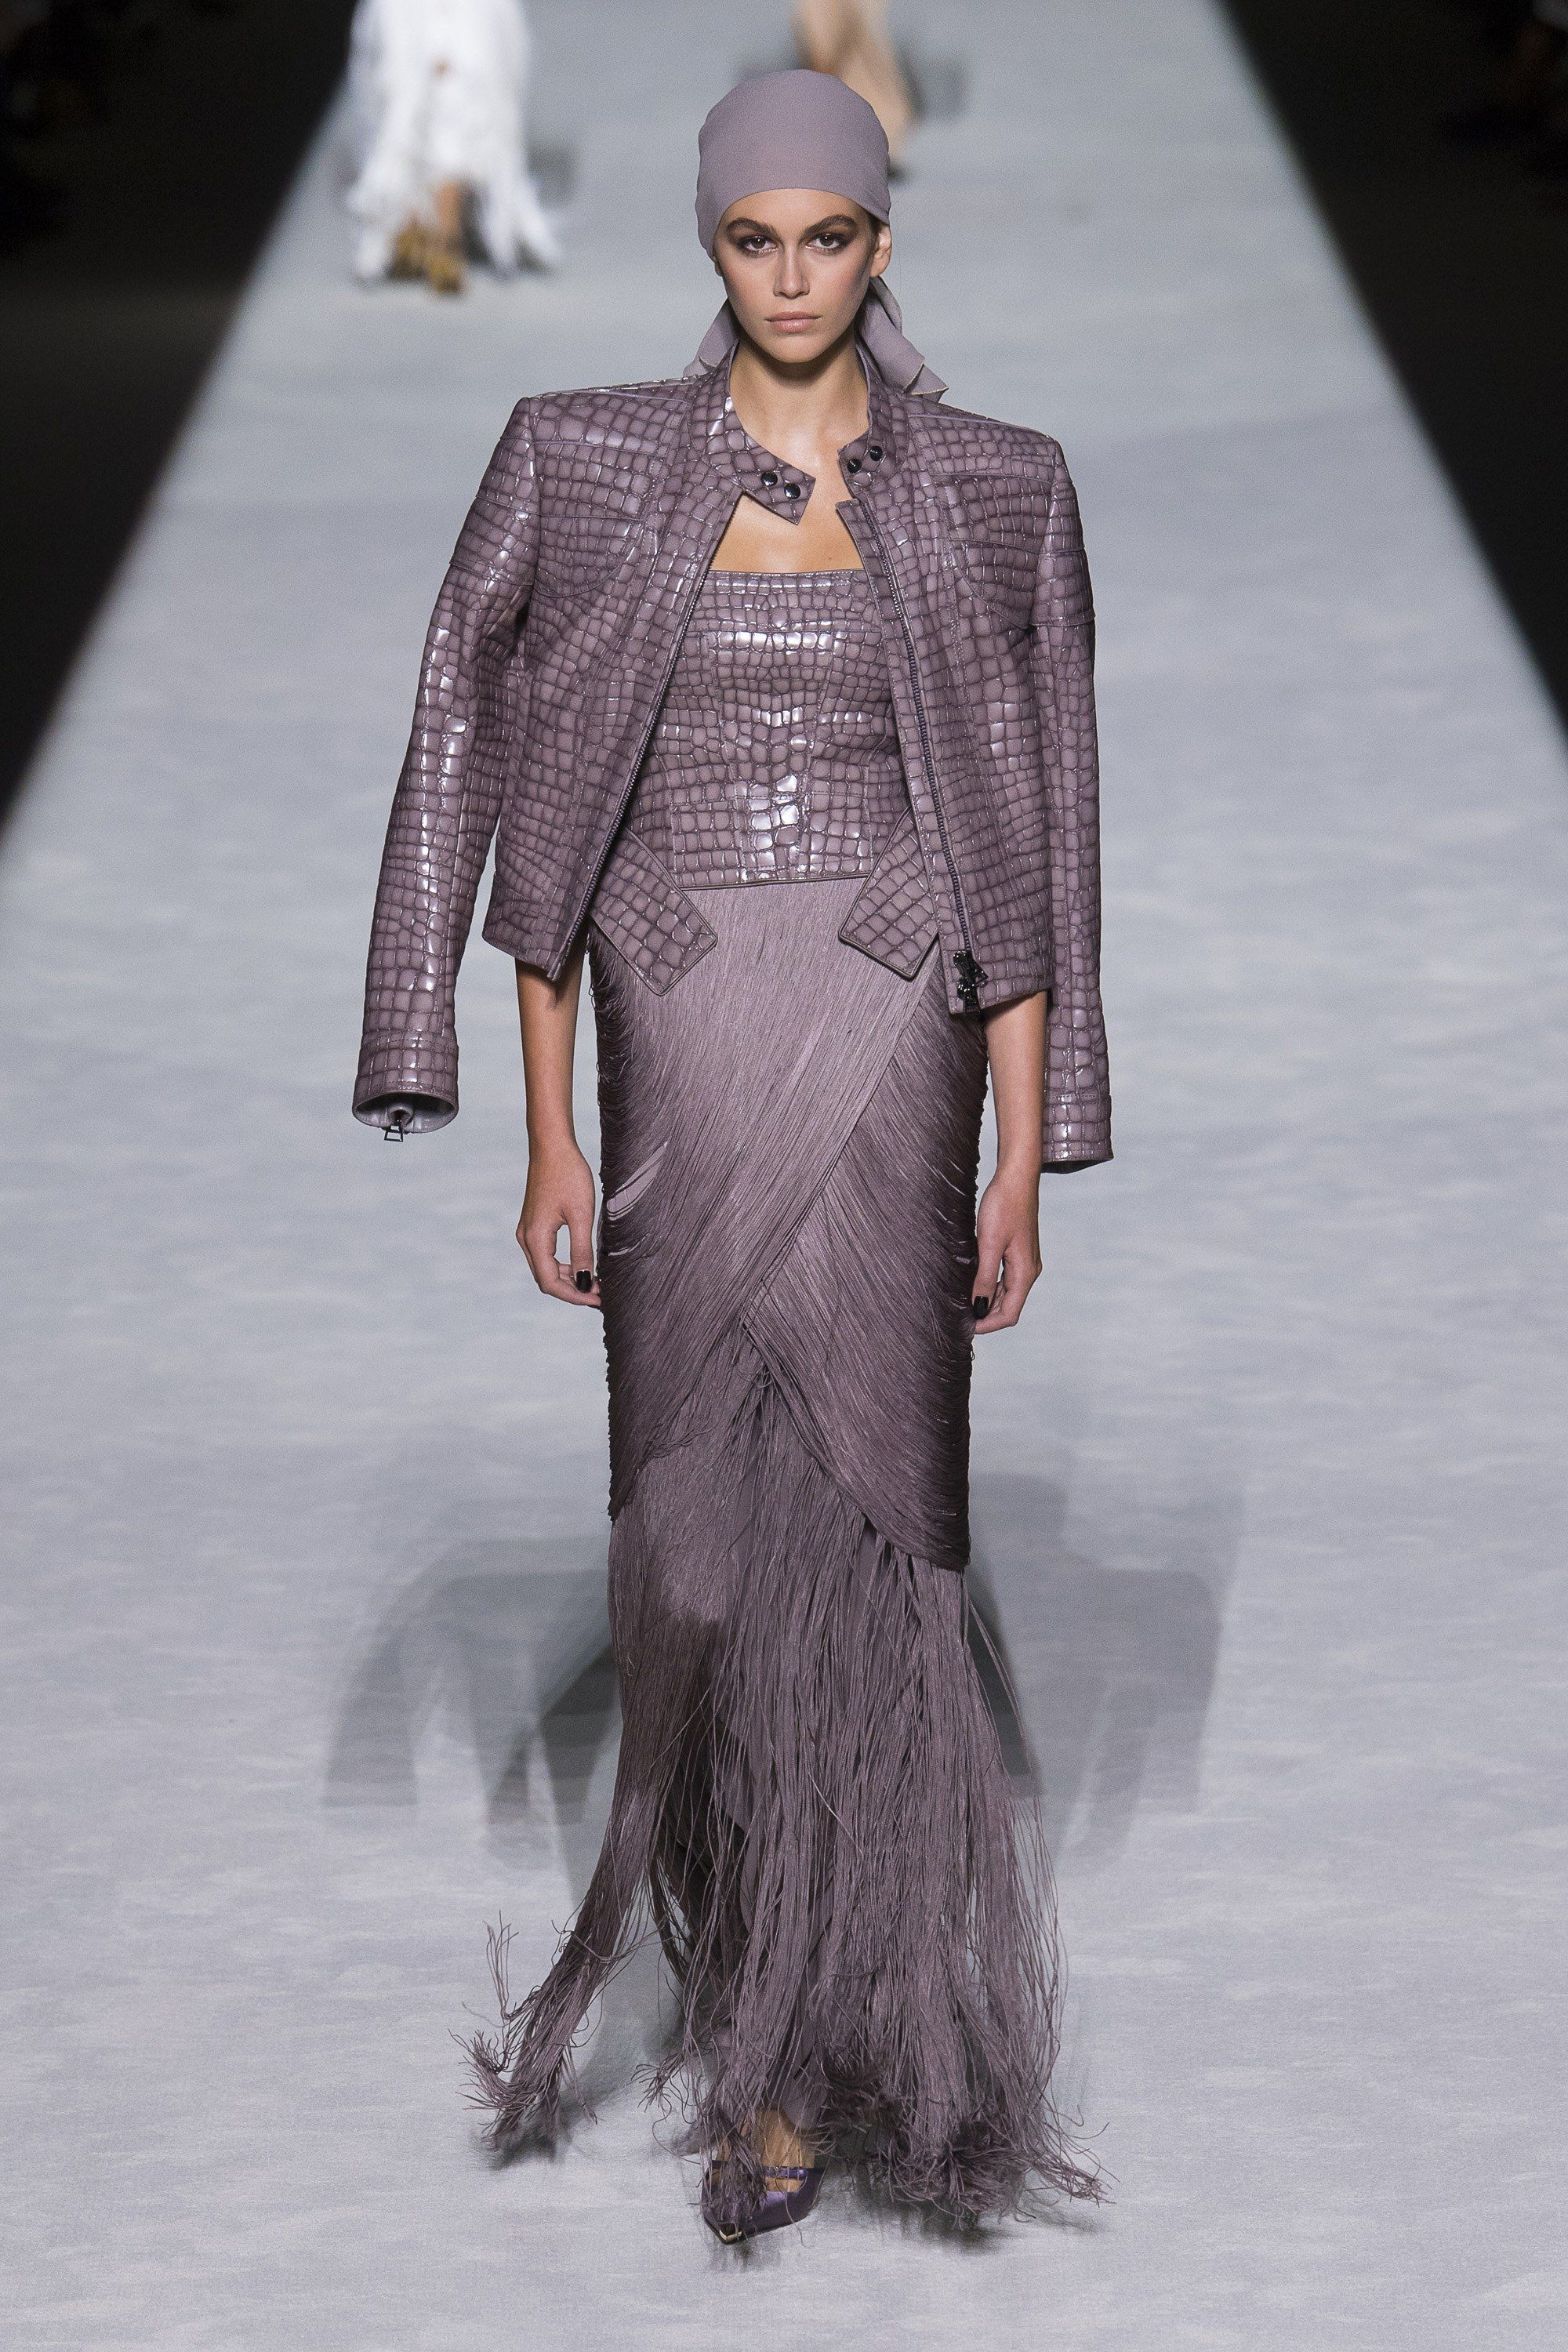 ... NYFW. Inspired by the Hutt Cartel. Tom Ford Spring 2019 Ready-to-Wear  Collection - Vogue 60136f5b1ead